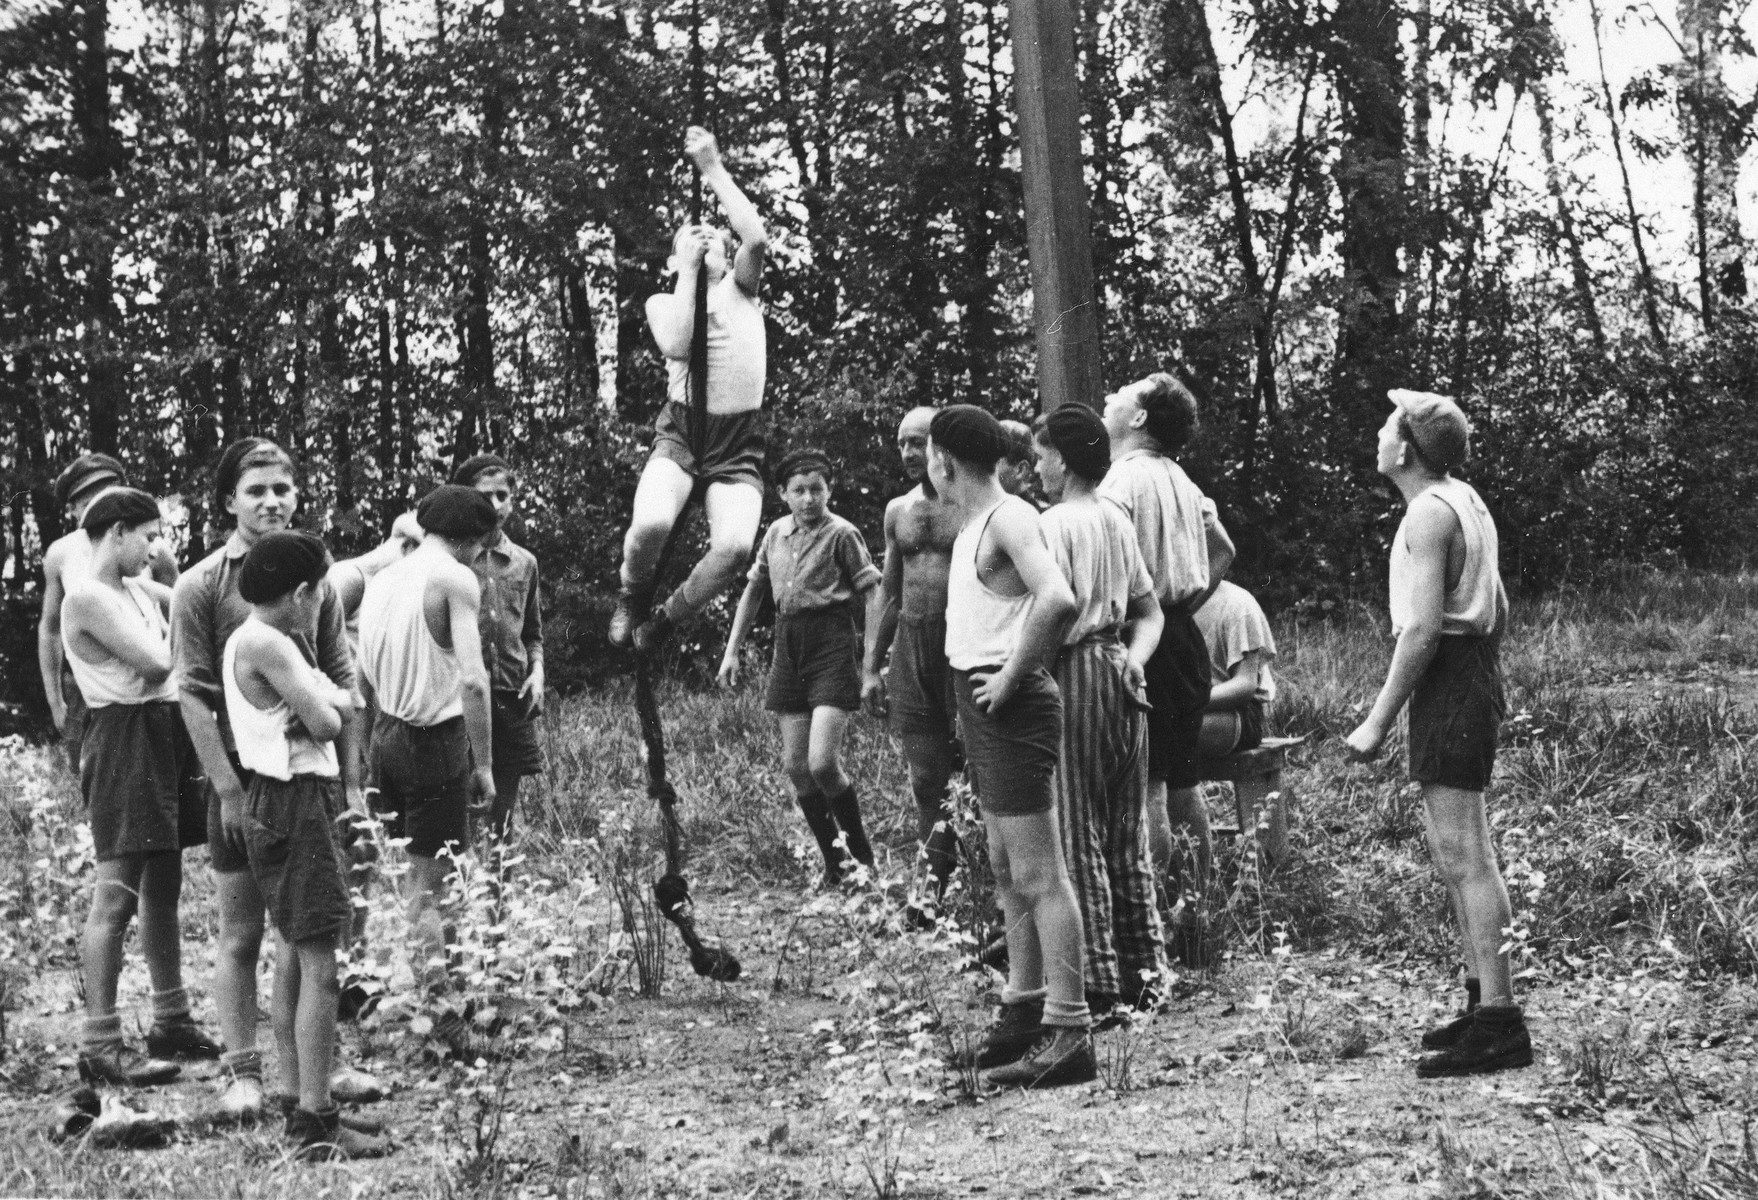 Jewish DP youth who numbered among the Buchenwald children, practice climbing a rope at an OSE (Oeuvre de Secours aux Enfants) children's home in France [either in Ambloy or Taverny].   One of the boys is still wearing the trousers from his concentration camp uniform.